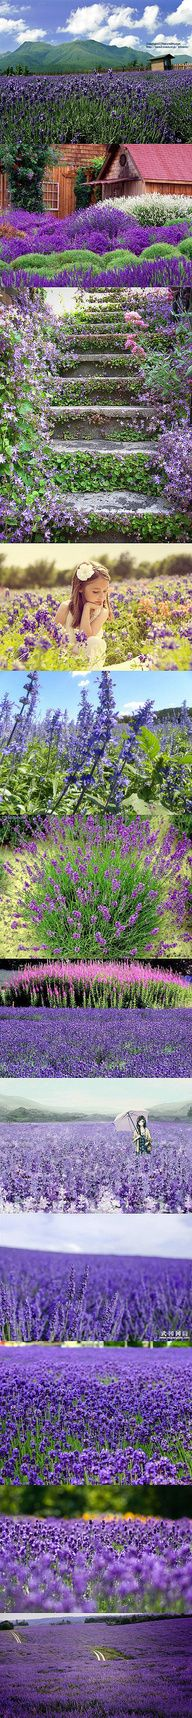 Our Season is over and now cut back in hopes of a November re-bloom ~ Lavender